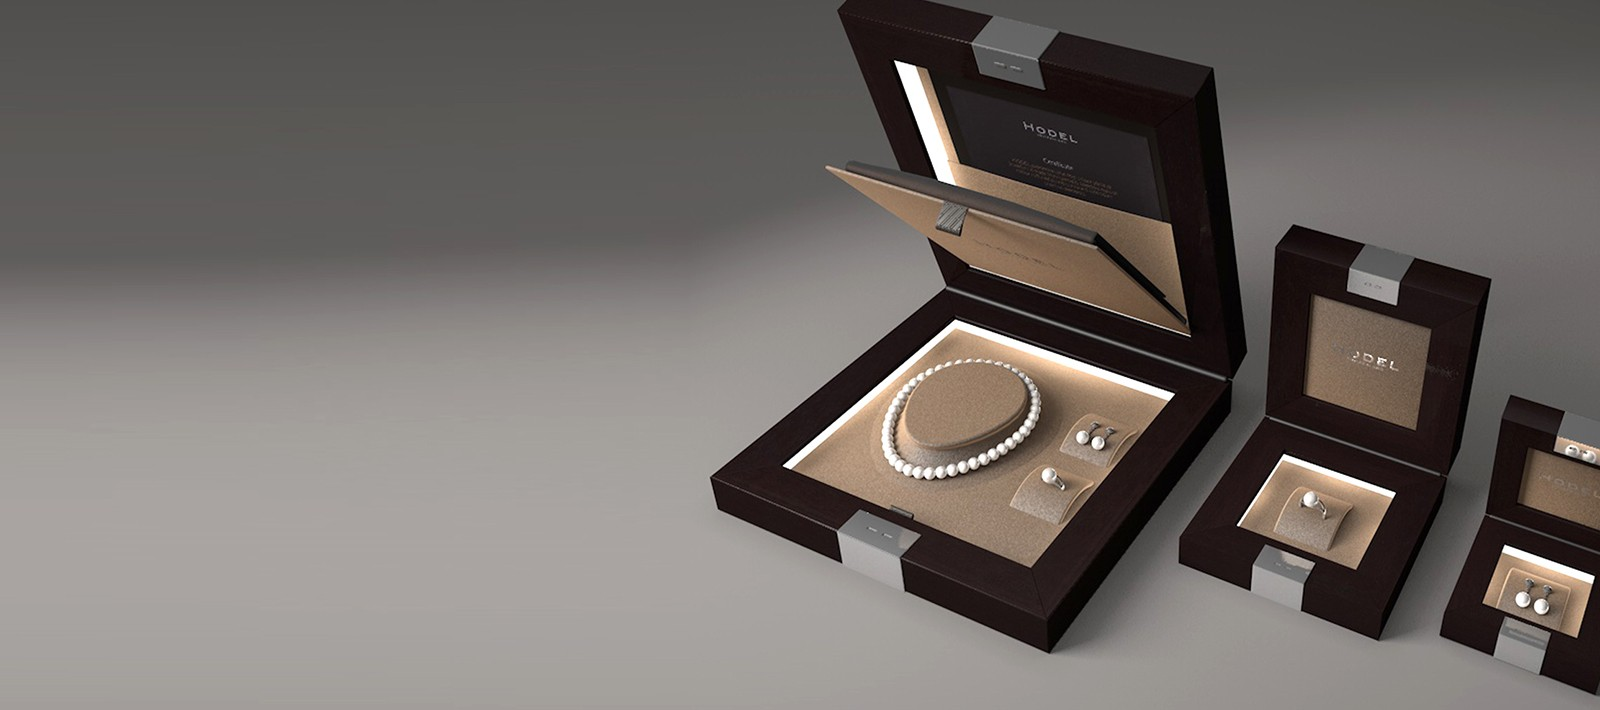 Luxury Packaging Design for a jewelry company